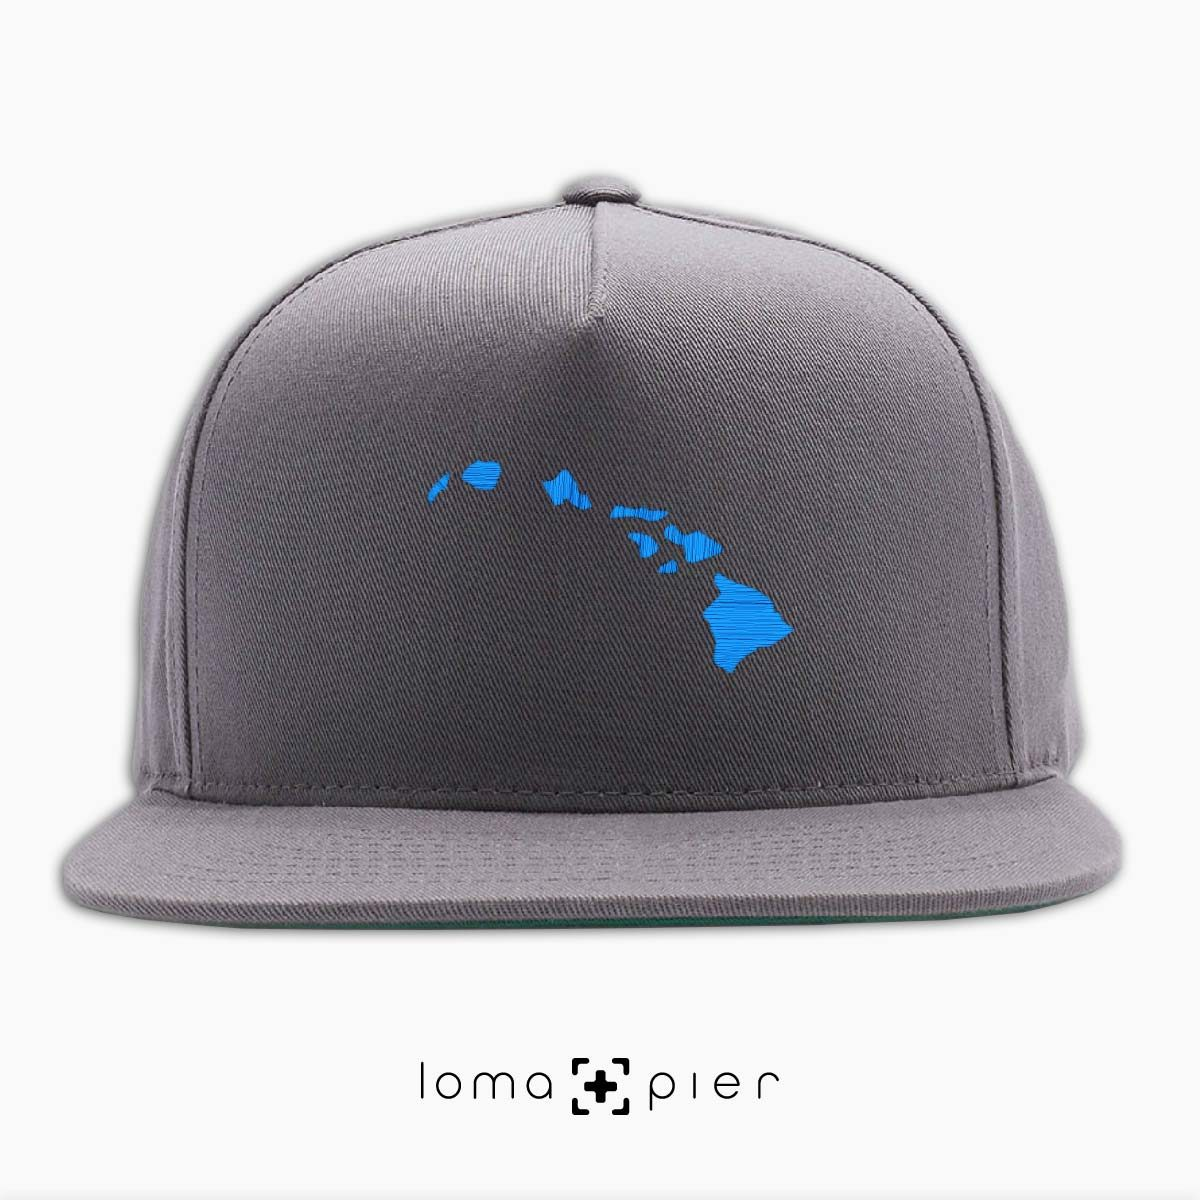 HAWAIIAN ISLANDS icon embroidered on a grey classic snapback hat by loma+pier hat store